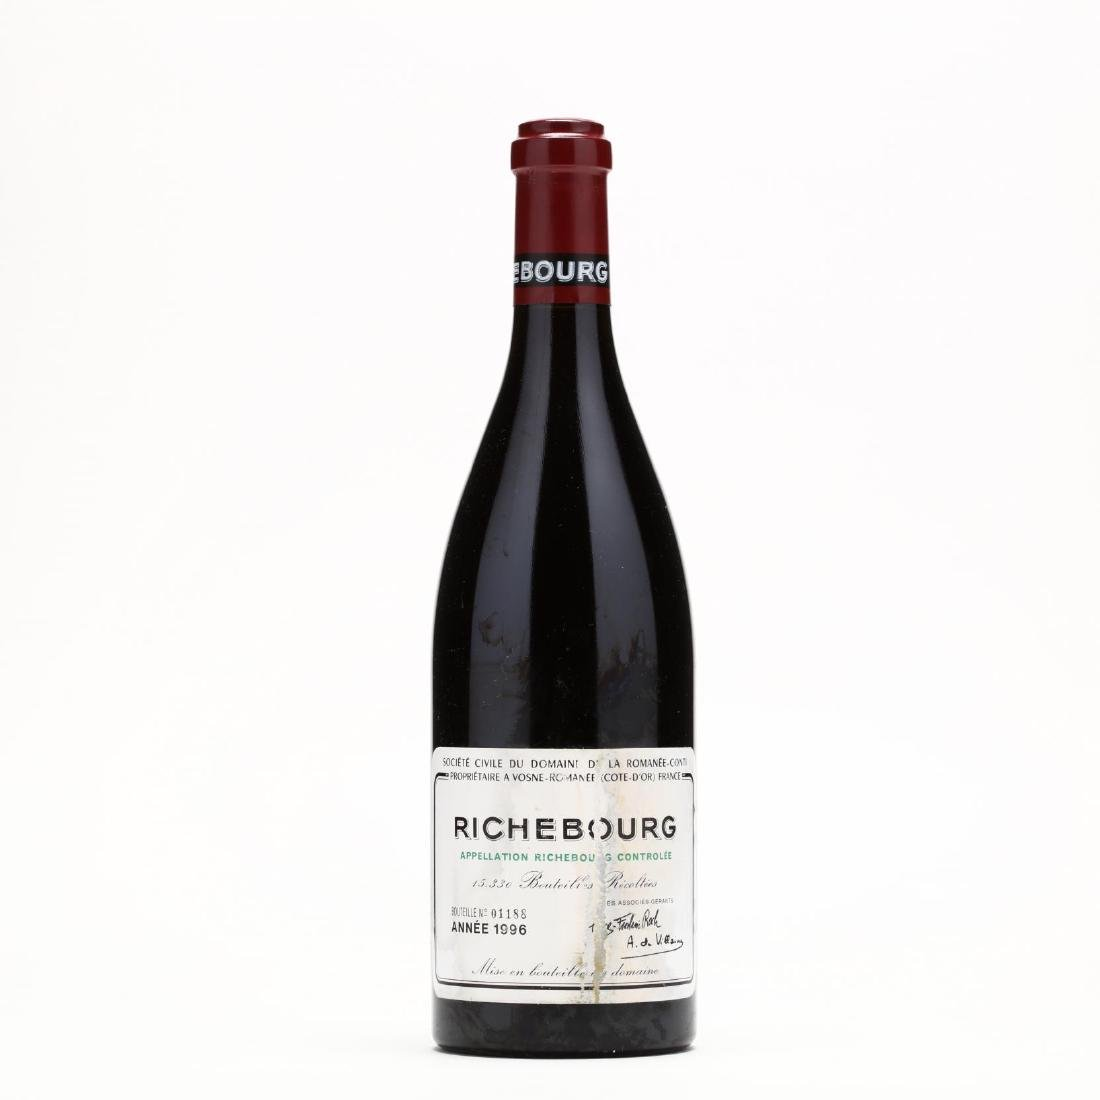 Richebourg - Vintage 1996